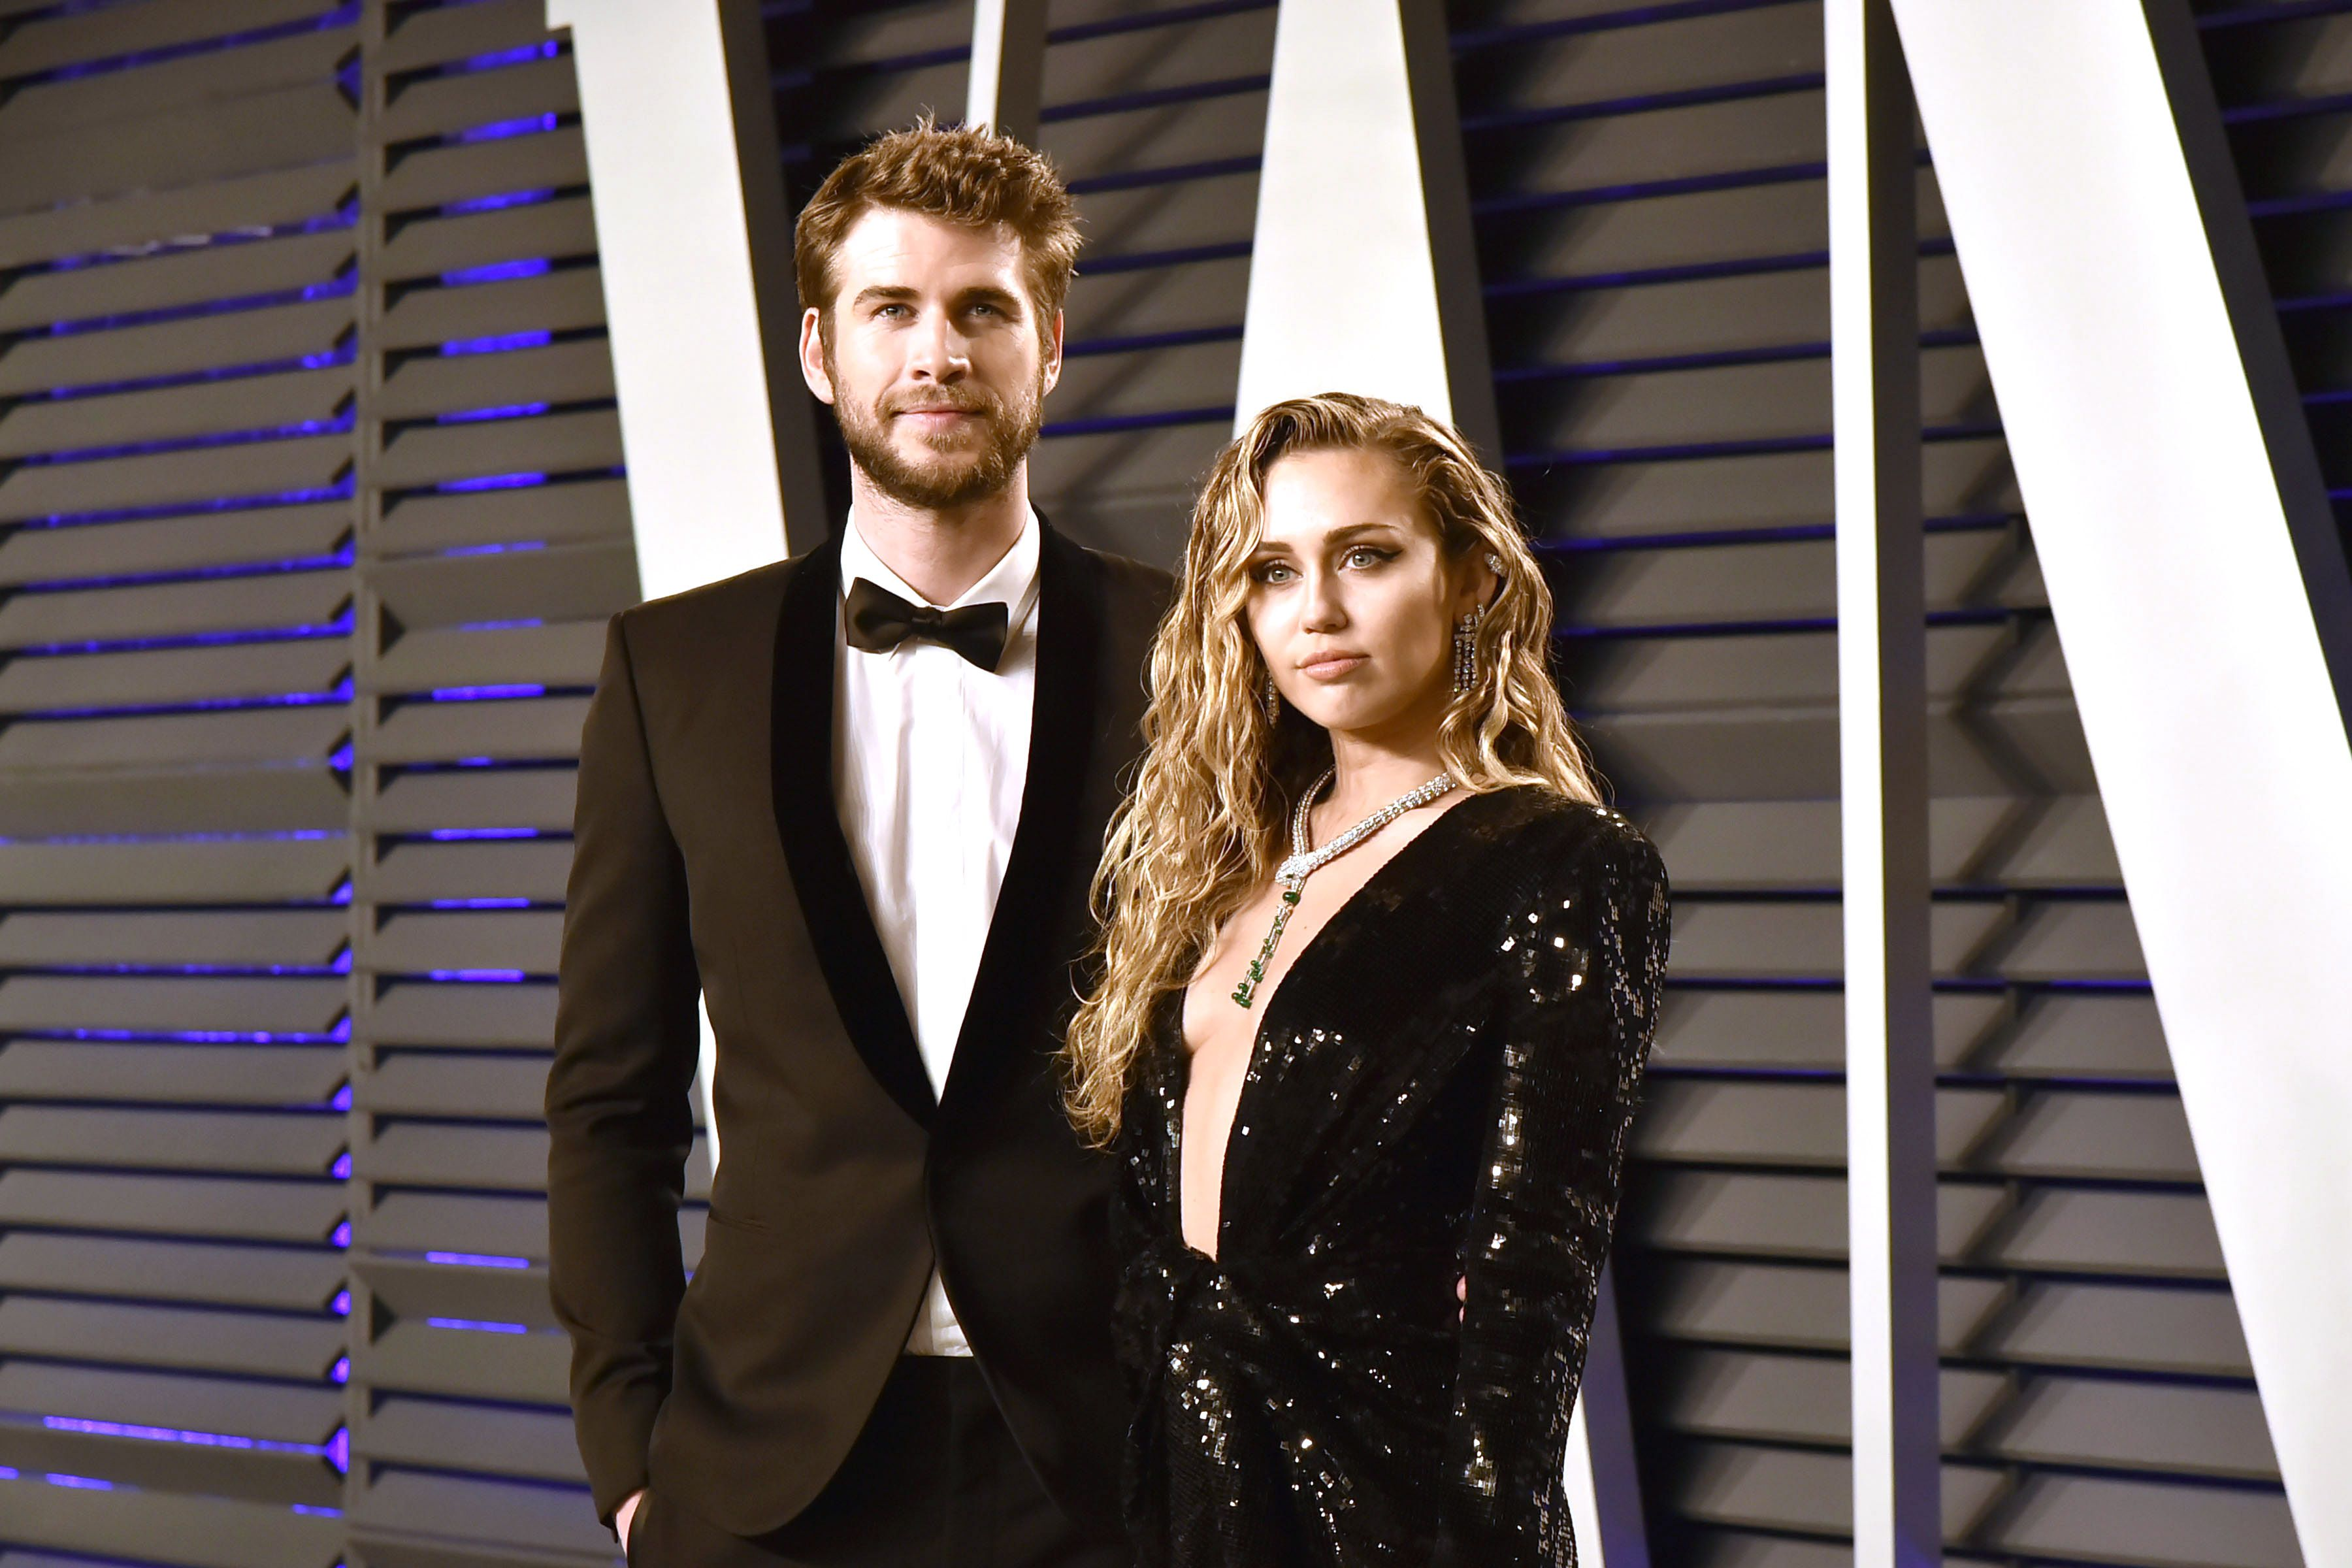 How Miley Cyrus Feels About Liam Hemsworth Suddenly Filing for Divorce